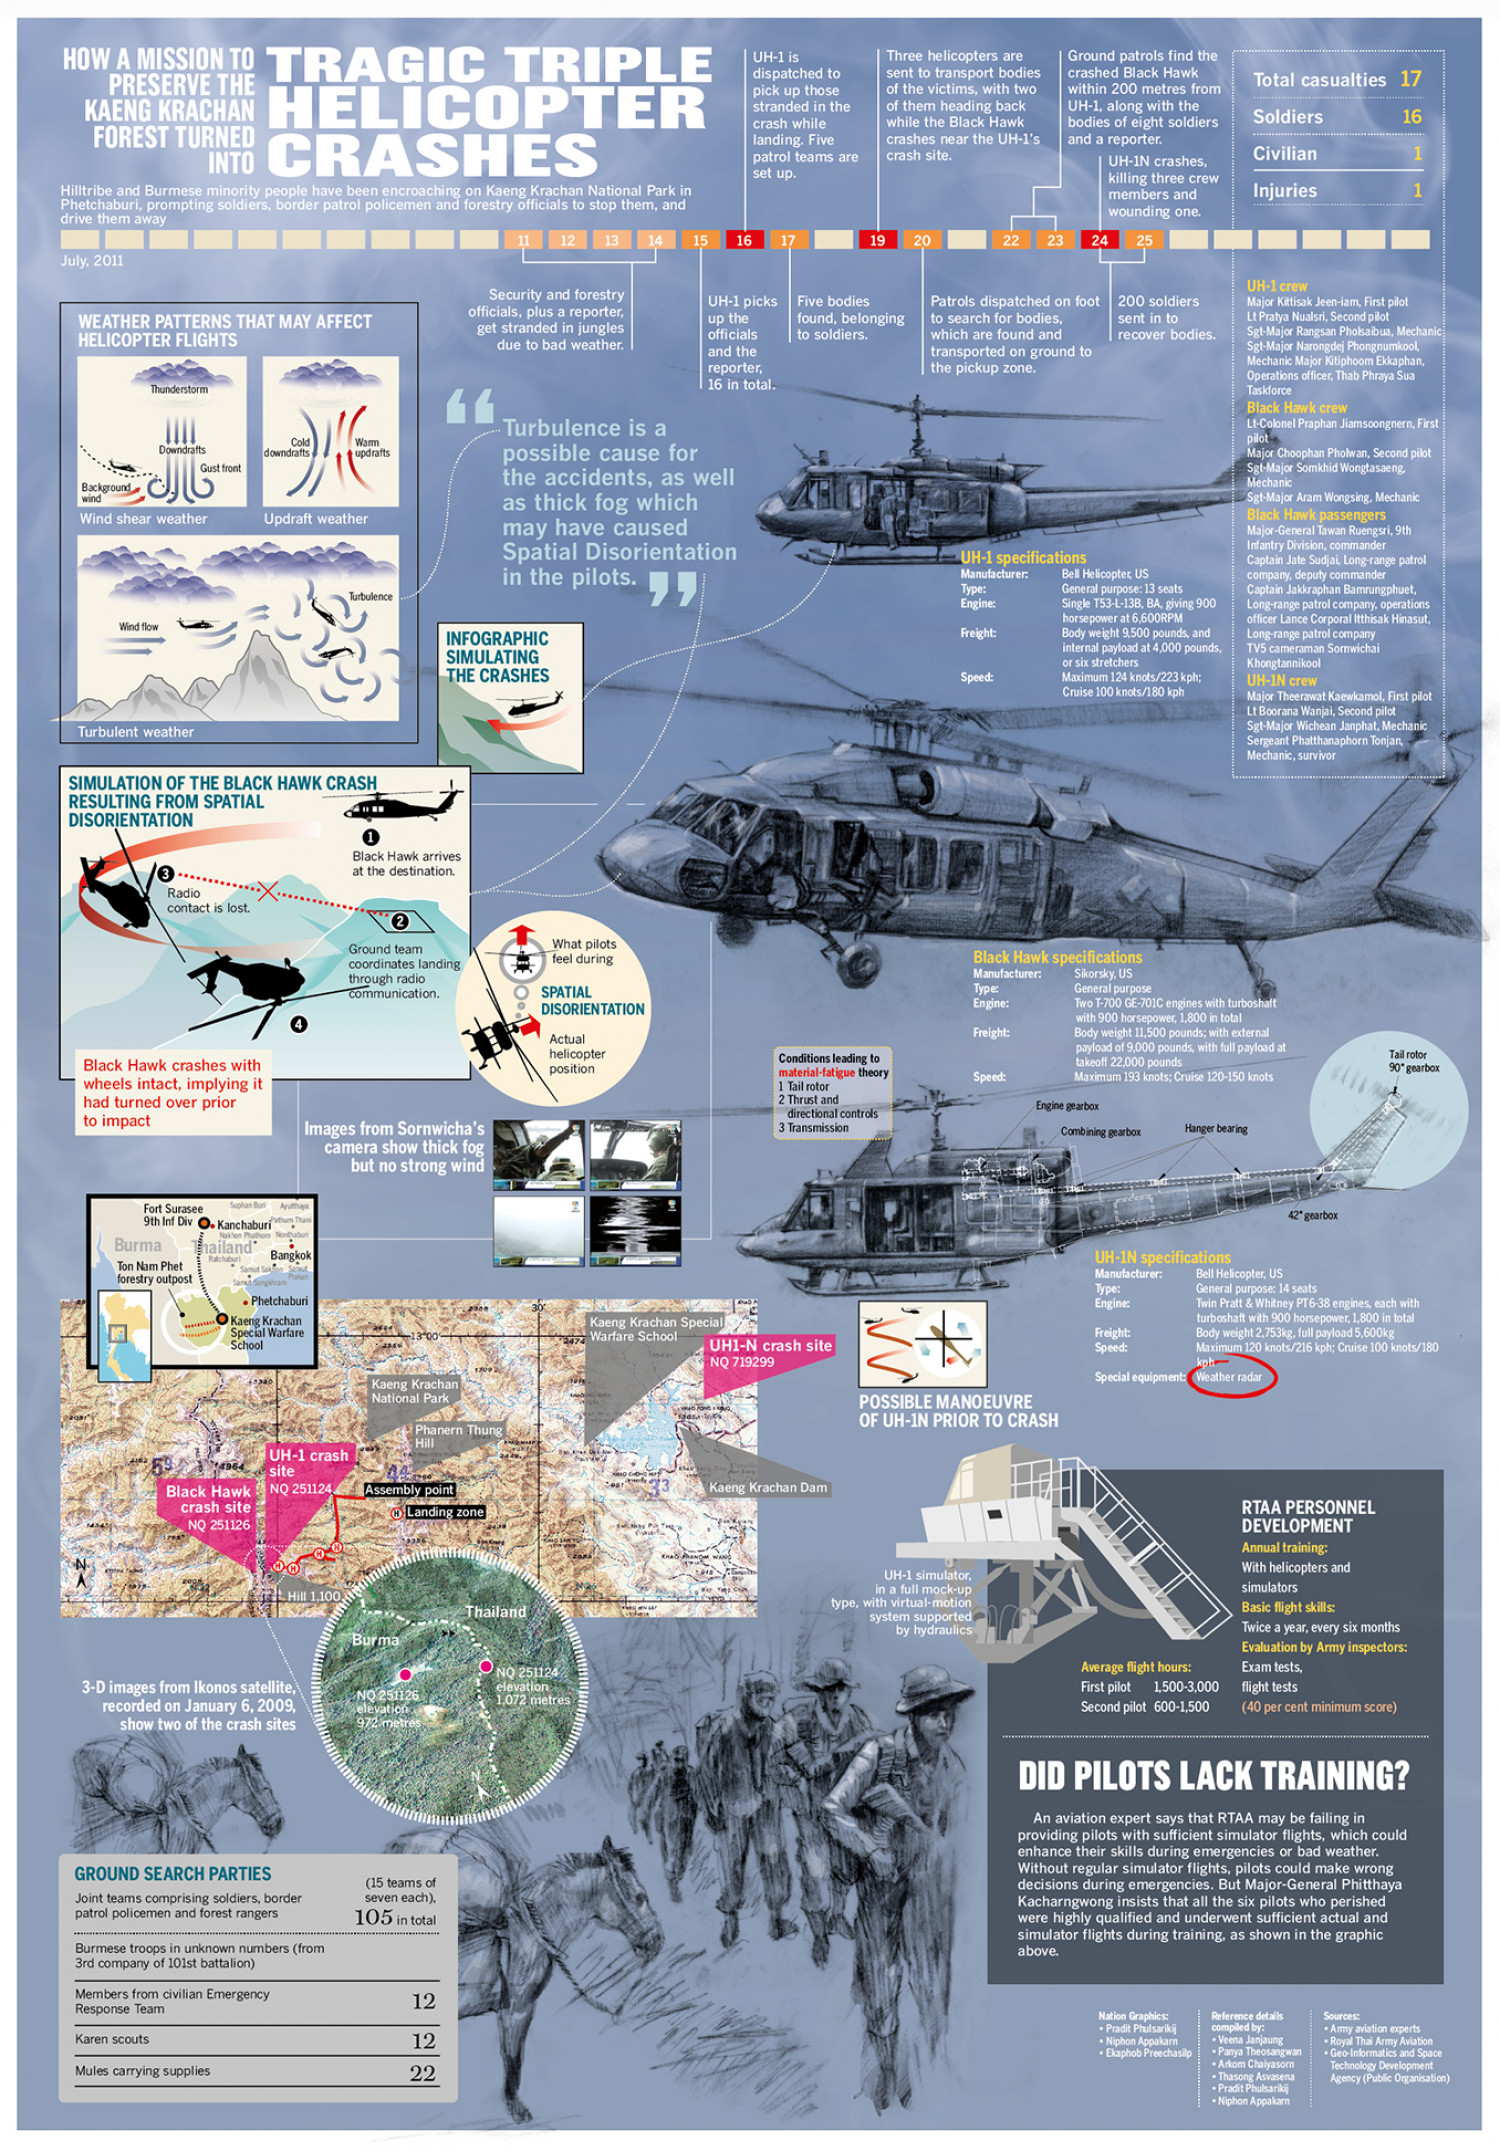 How A Missiom To Preserve The Kaeng Krachan Forest Turned Into Tragic Triple Helicopter Crashes Infographic